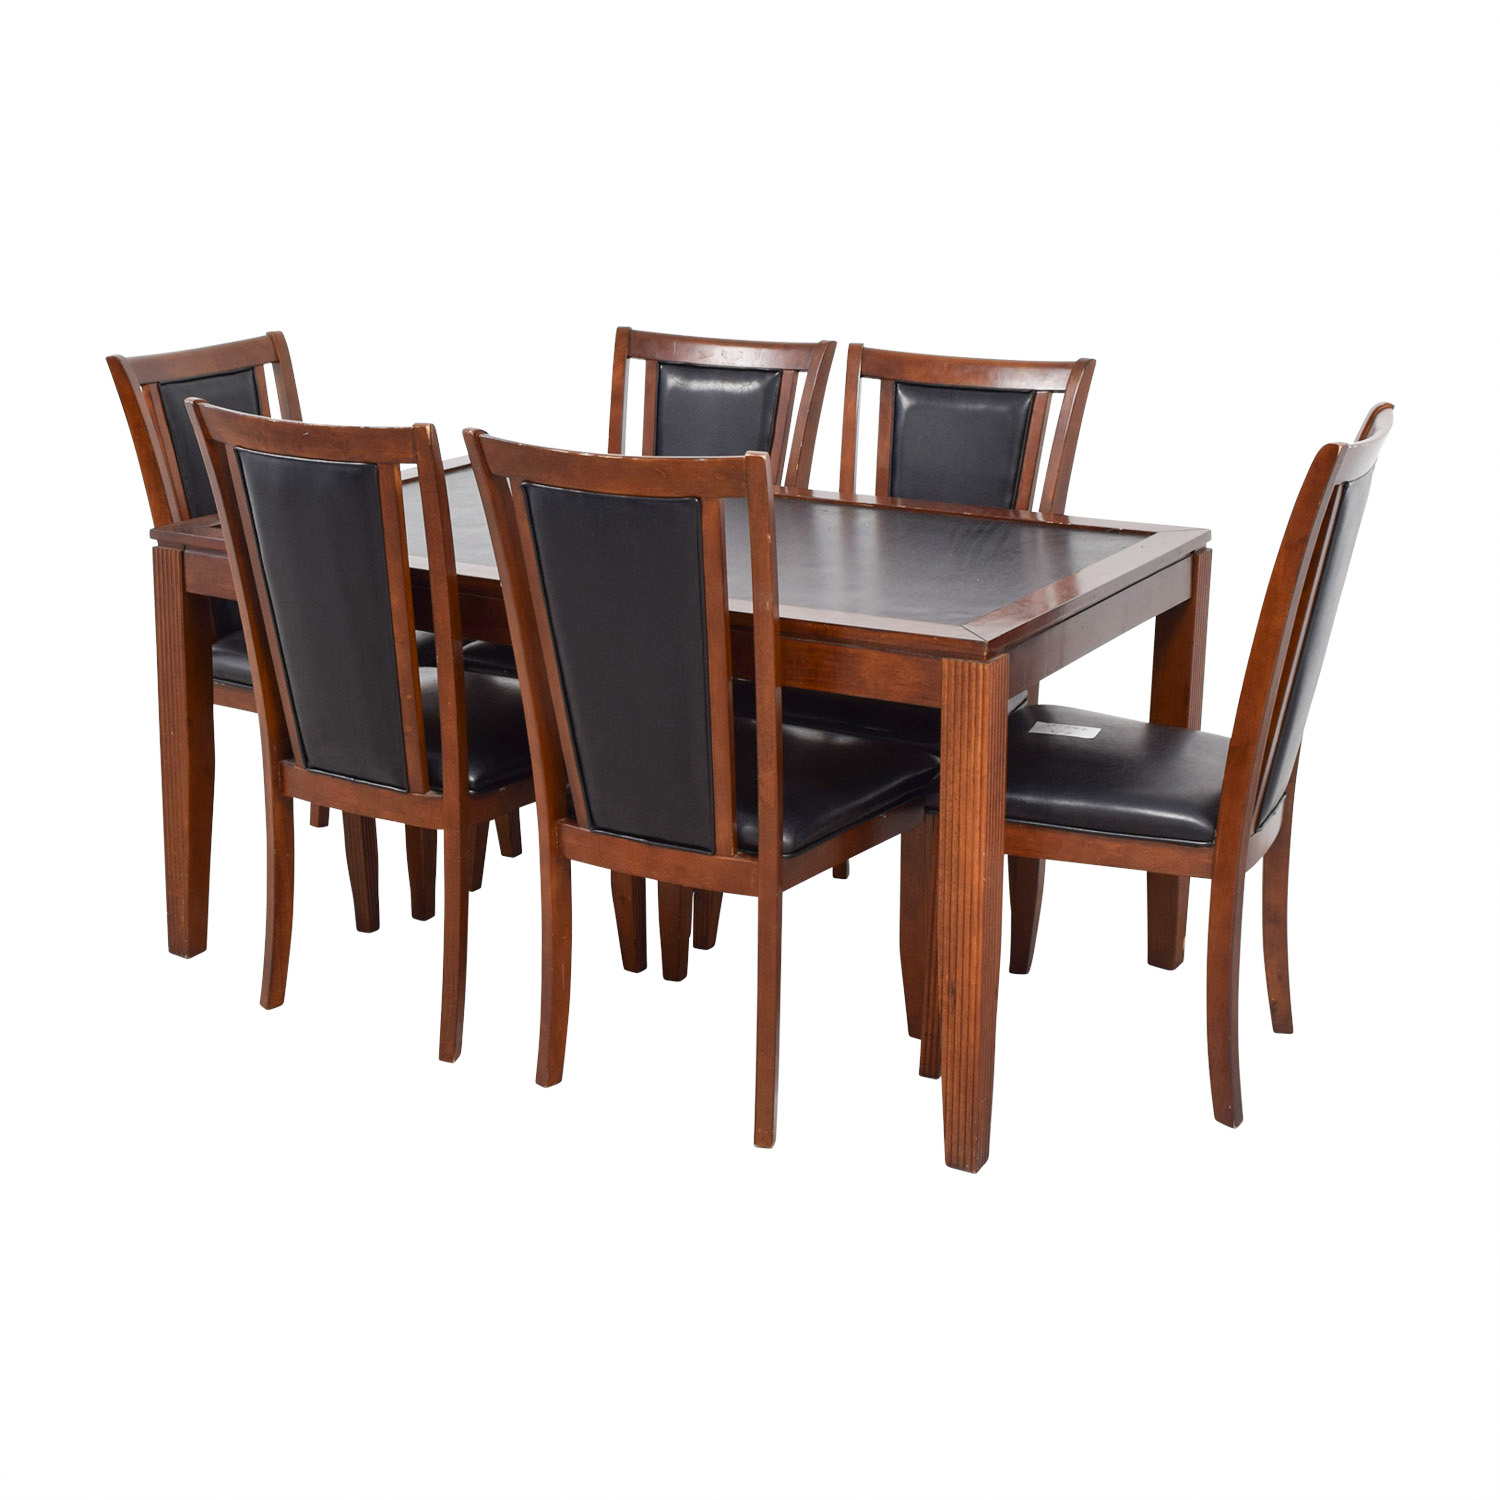 40 Off Bob S Furniture Bob S Furniture Leather And Wood Dining Set Tables